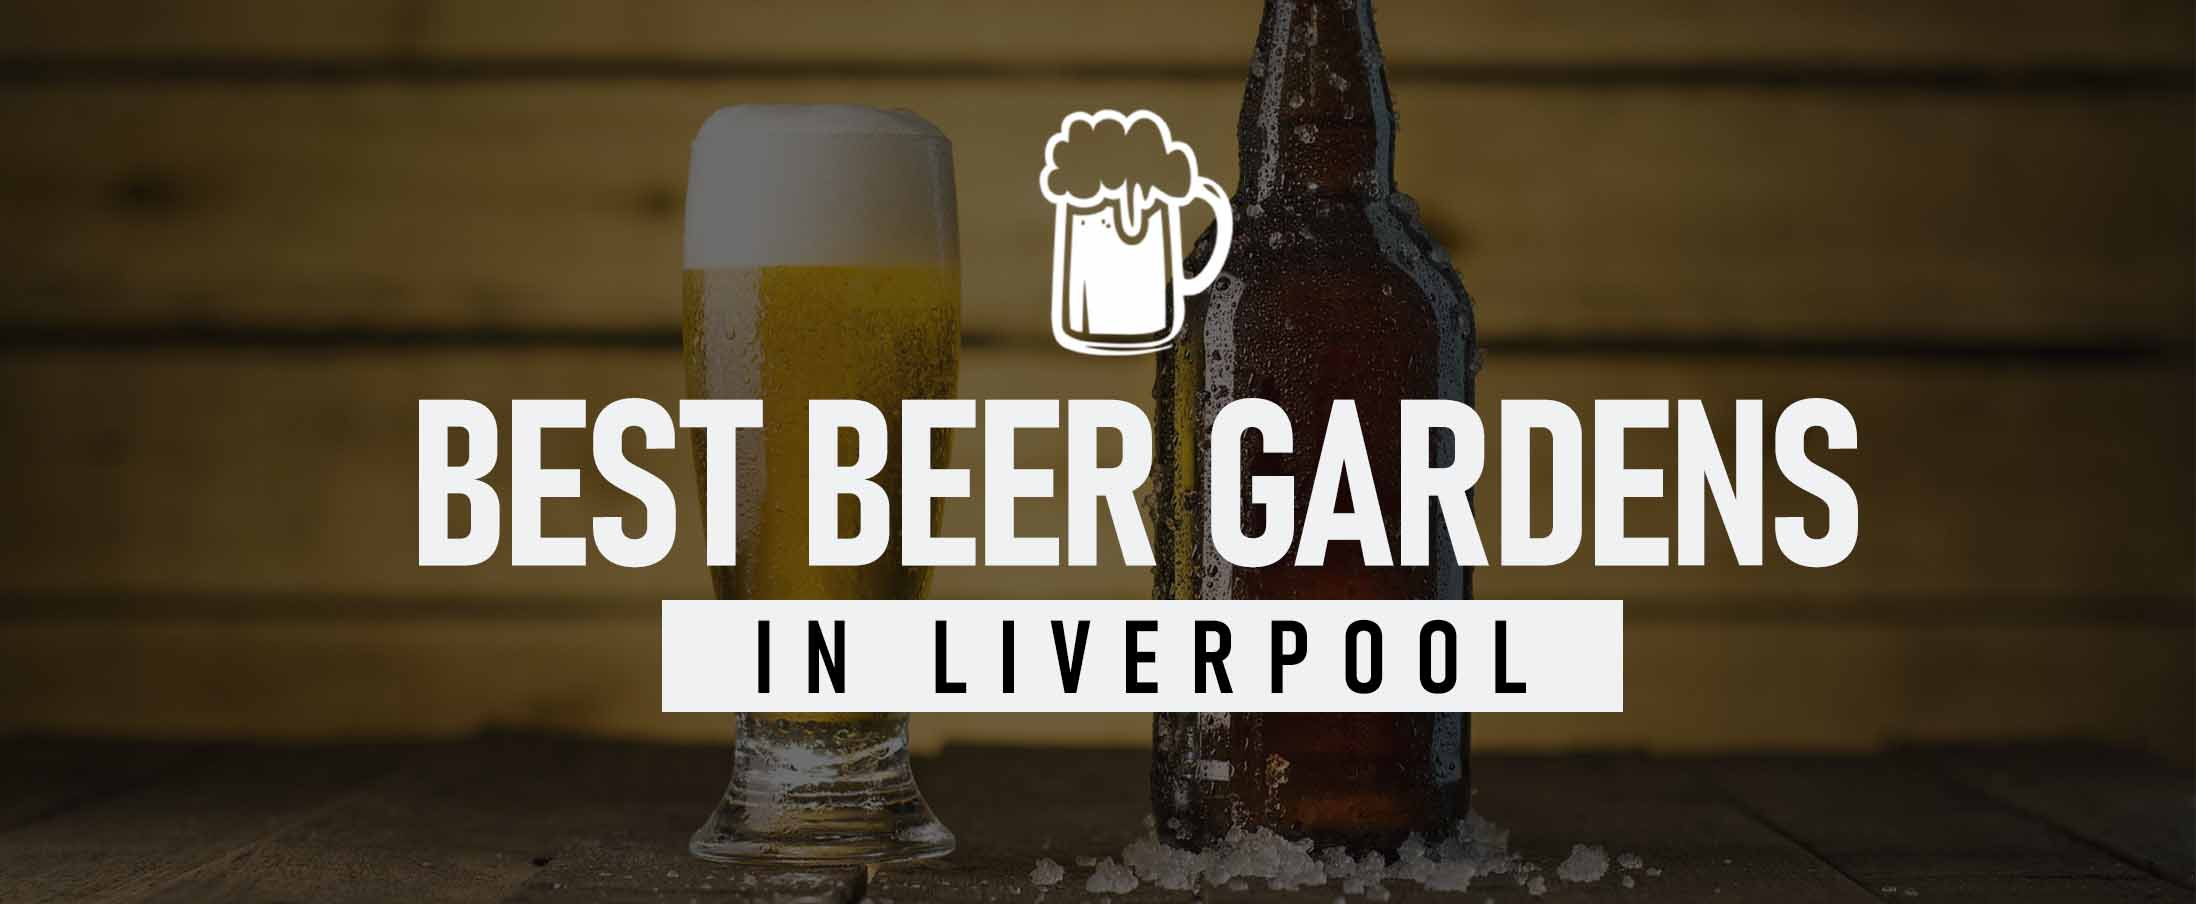 Best Beer Gardens in Liverpool